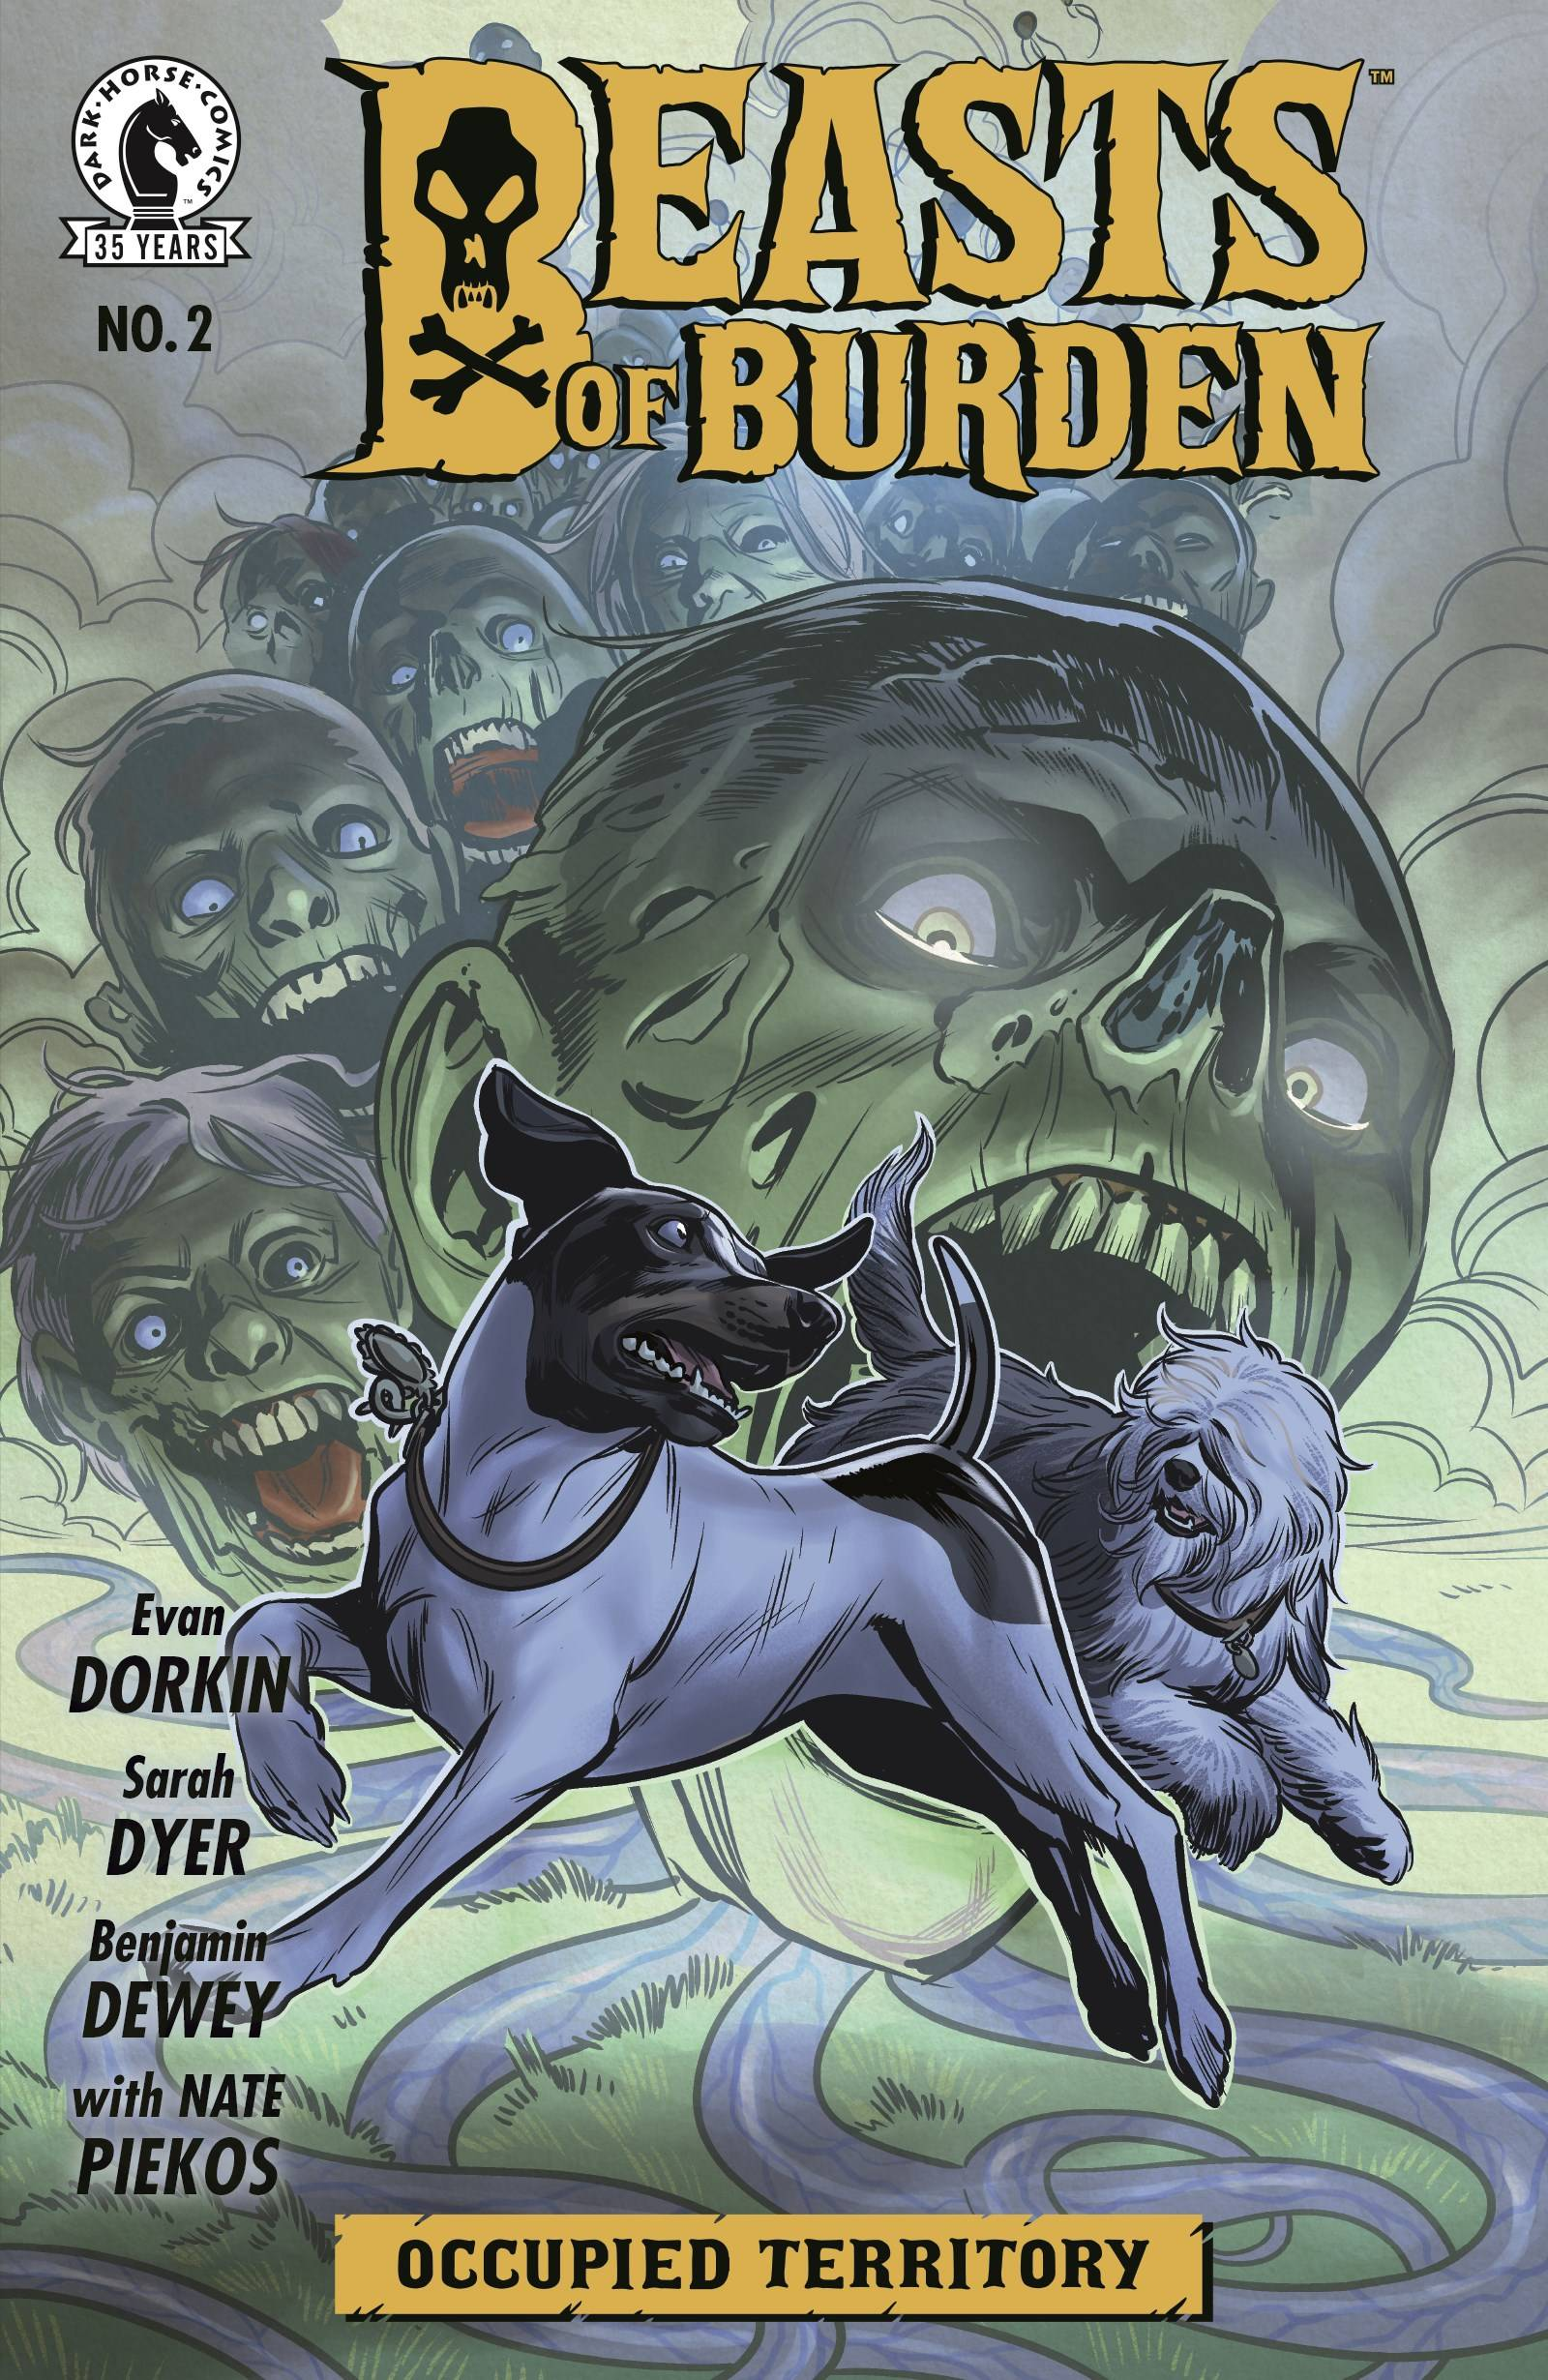 BEASTS OF BURDEN OCCUPIED TERRITORY #2 (OF 4) CVR A DEWEY